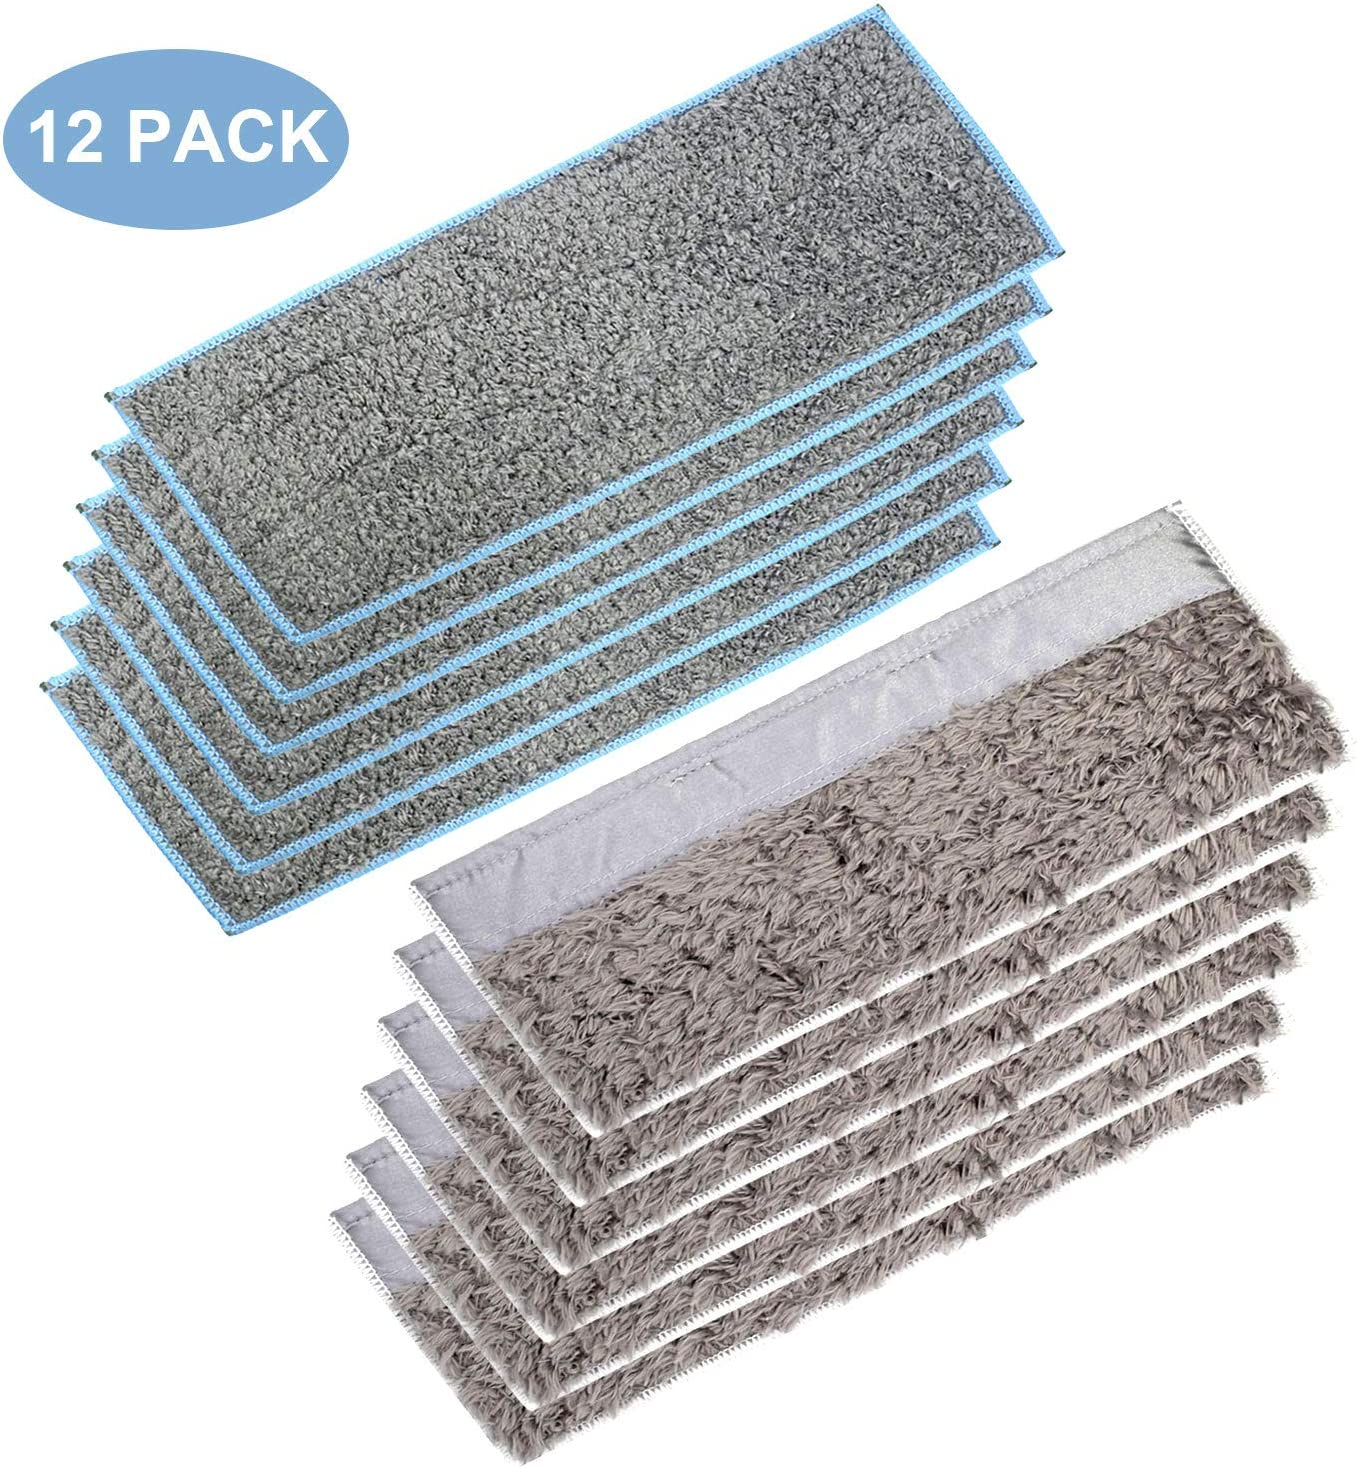 Extolife 12 Pack Washable and Reusable Mopping Pads for iRobot Braava Jet m6 (6110) Wi-Fi Connected Robot Mop (6 Wet Pads & 6 Dry Pads)